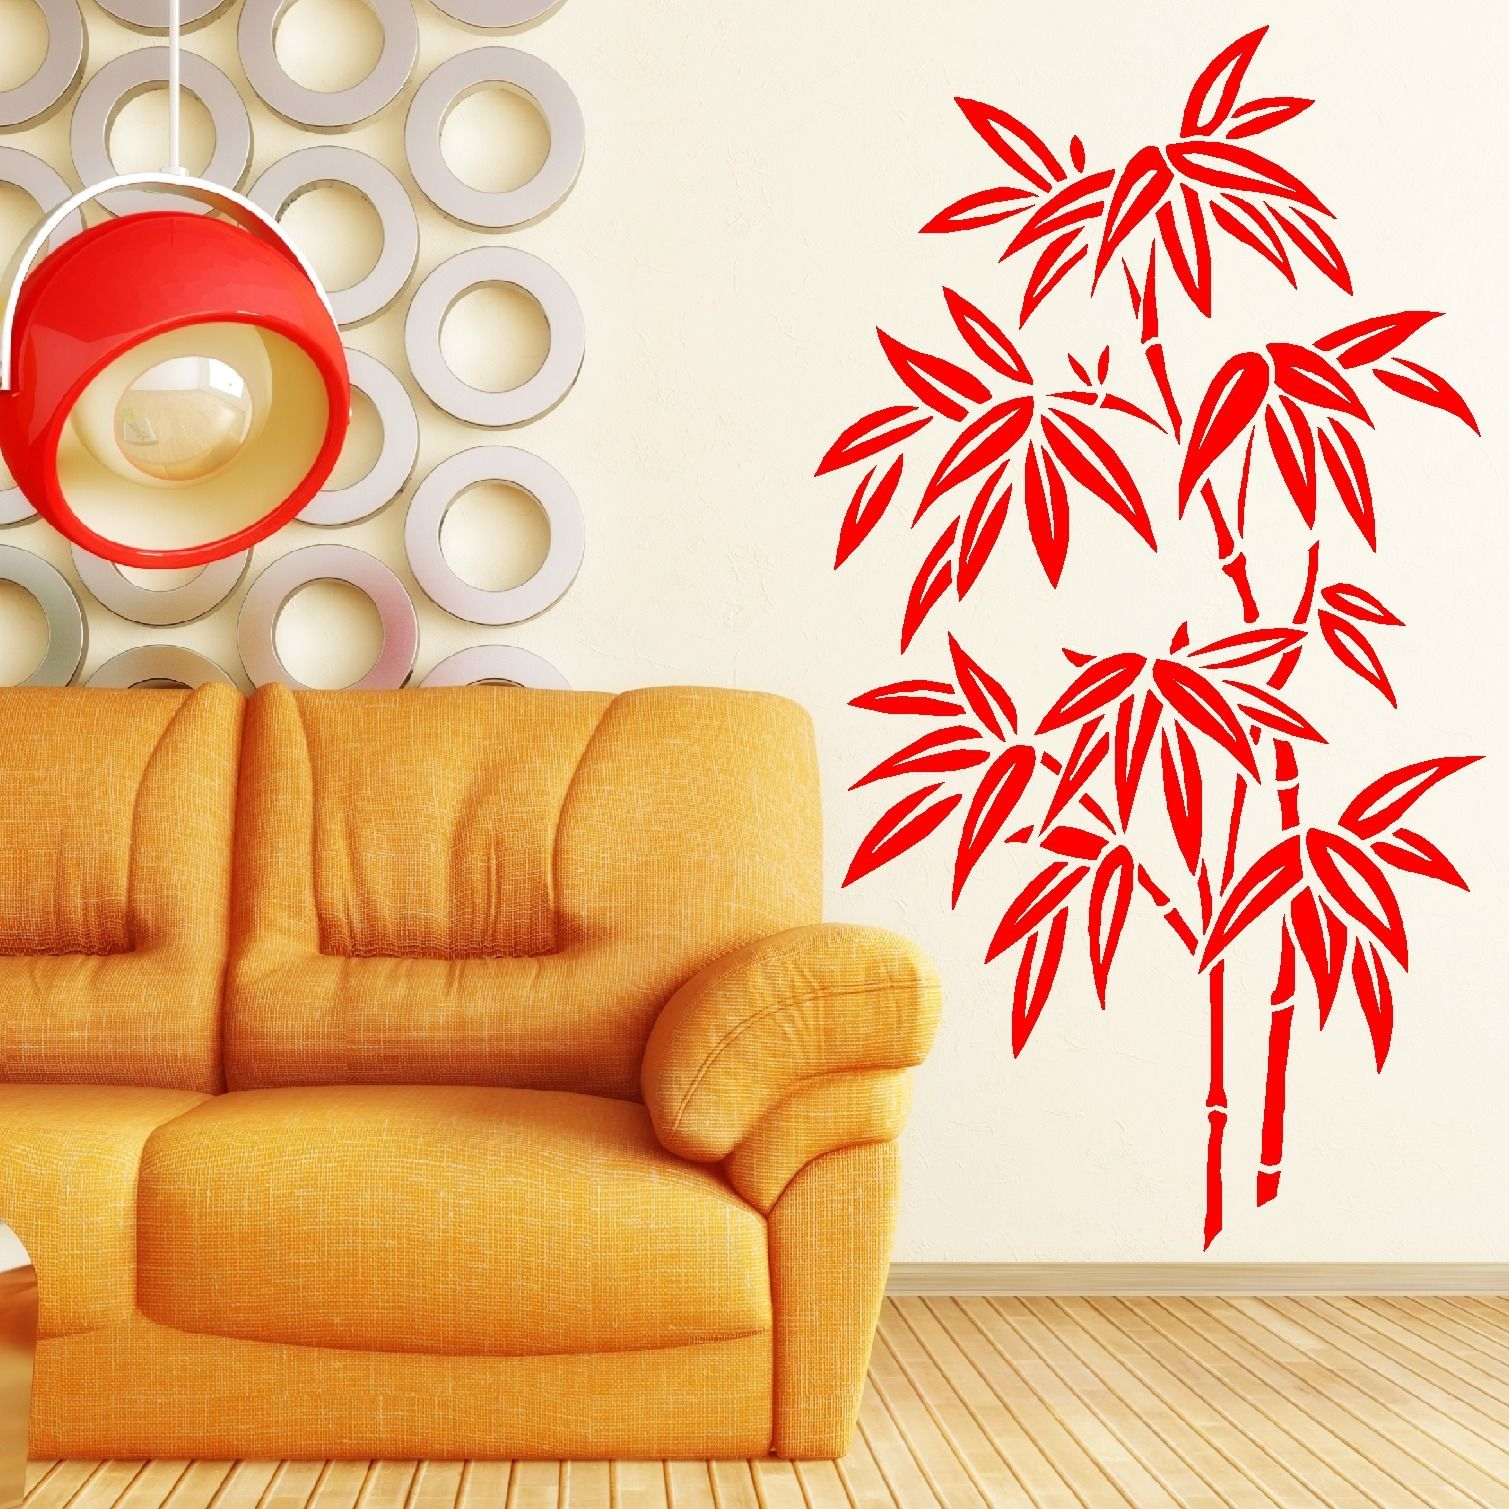 OS1673 CHINESE BAMBOO TREE WALL ART ROOM STICKER DECAL STENCIL FREE SHIPPING-in Wall Stickers from Home & Garden on Aliexpress.com | Alibaba Group